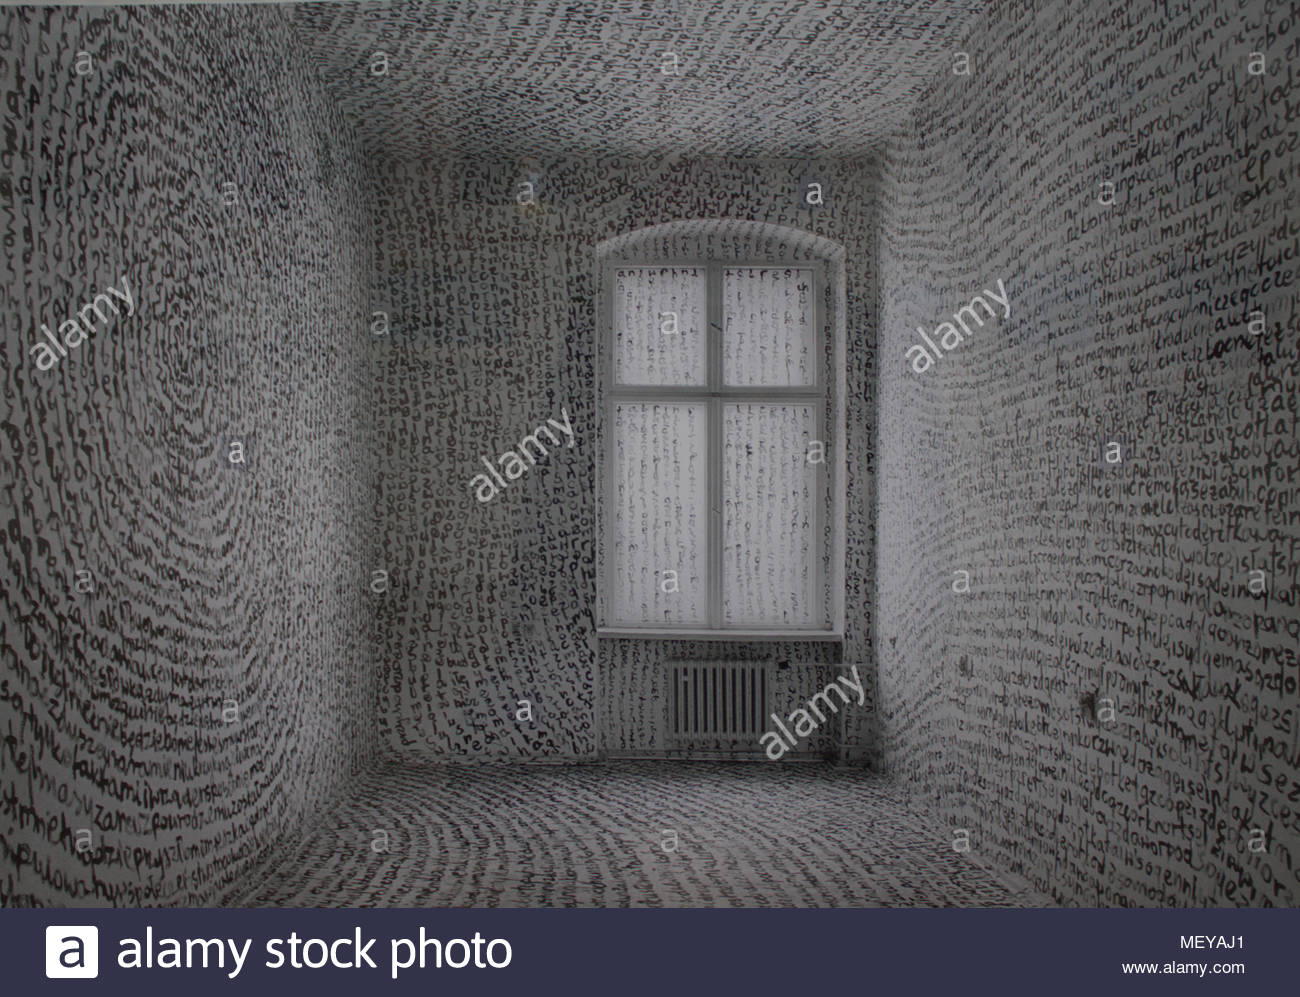 Room painted in words by tomasz madajczak on display in the uillinn gallery, skibbereen ireland. The words completely cover the walls floor and window. Stock Photo